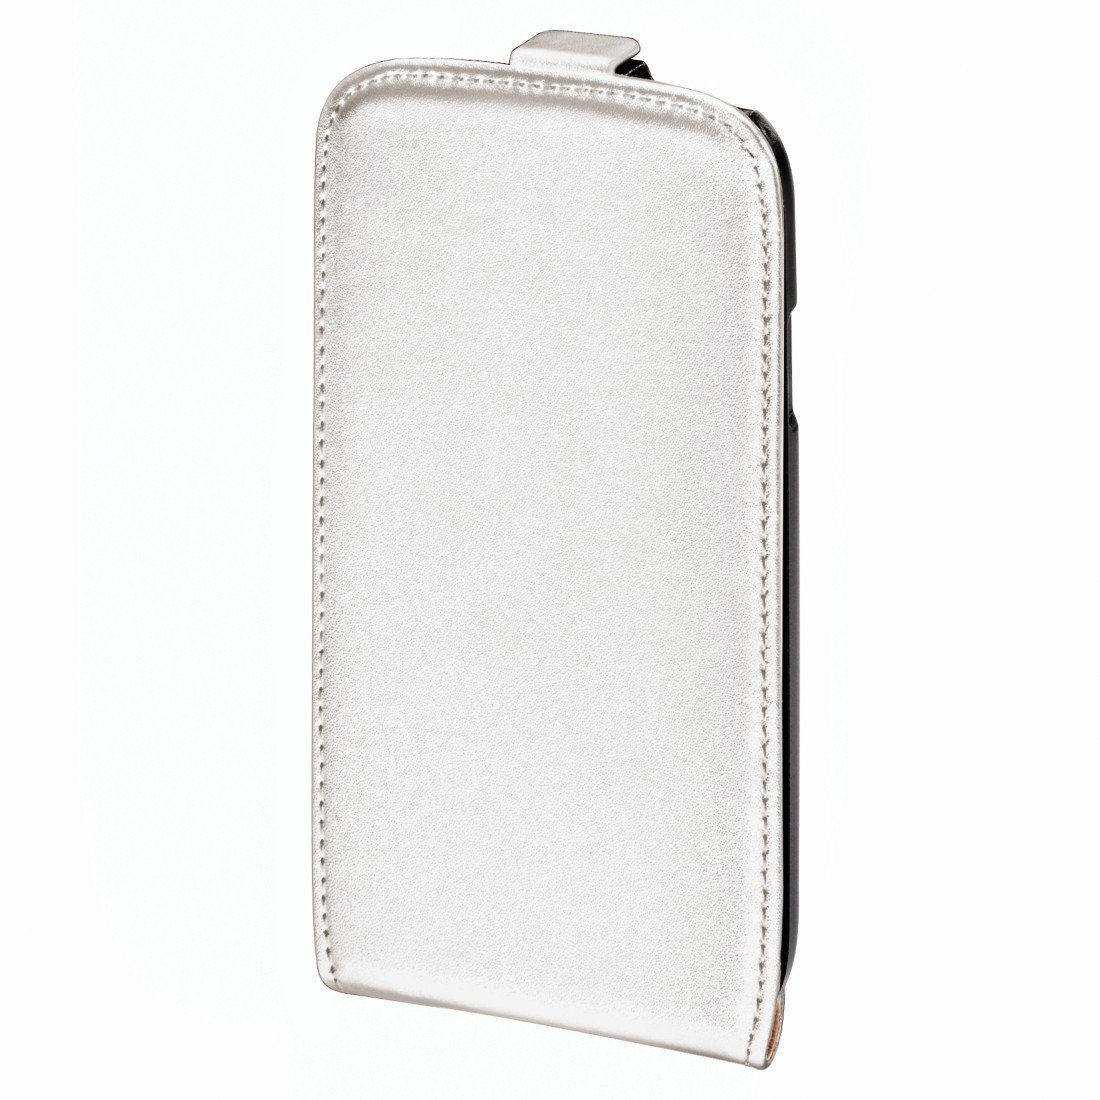 Hama Flap-Tasche Smart Case für Apple iPhone 5/5s/SE, Weiß